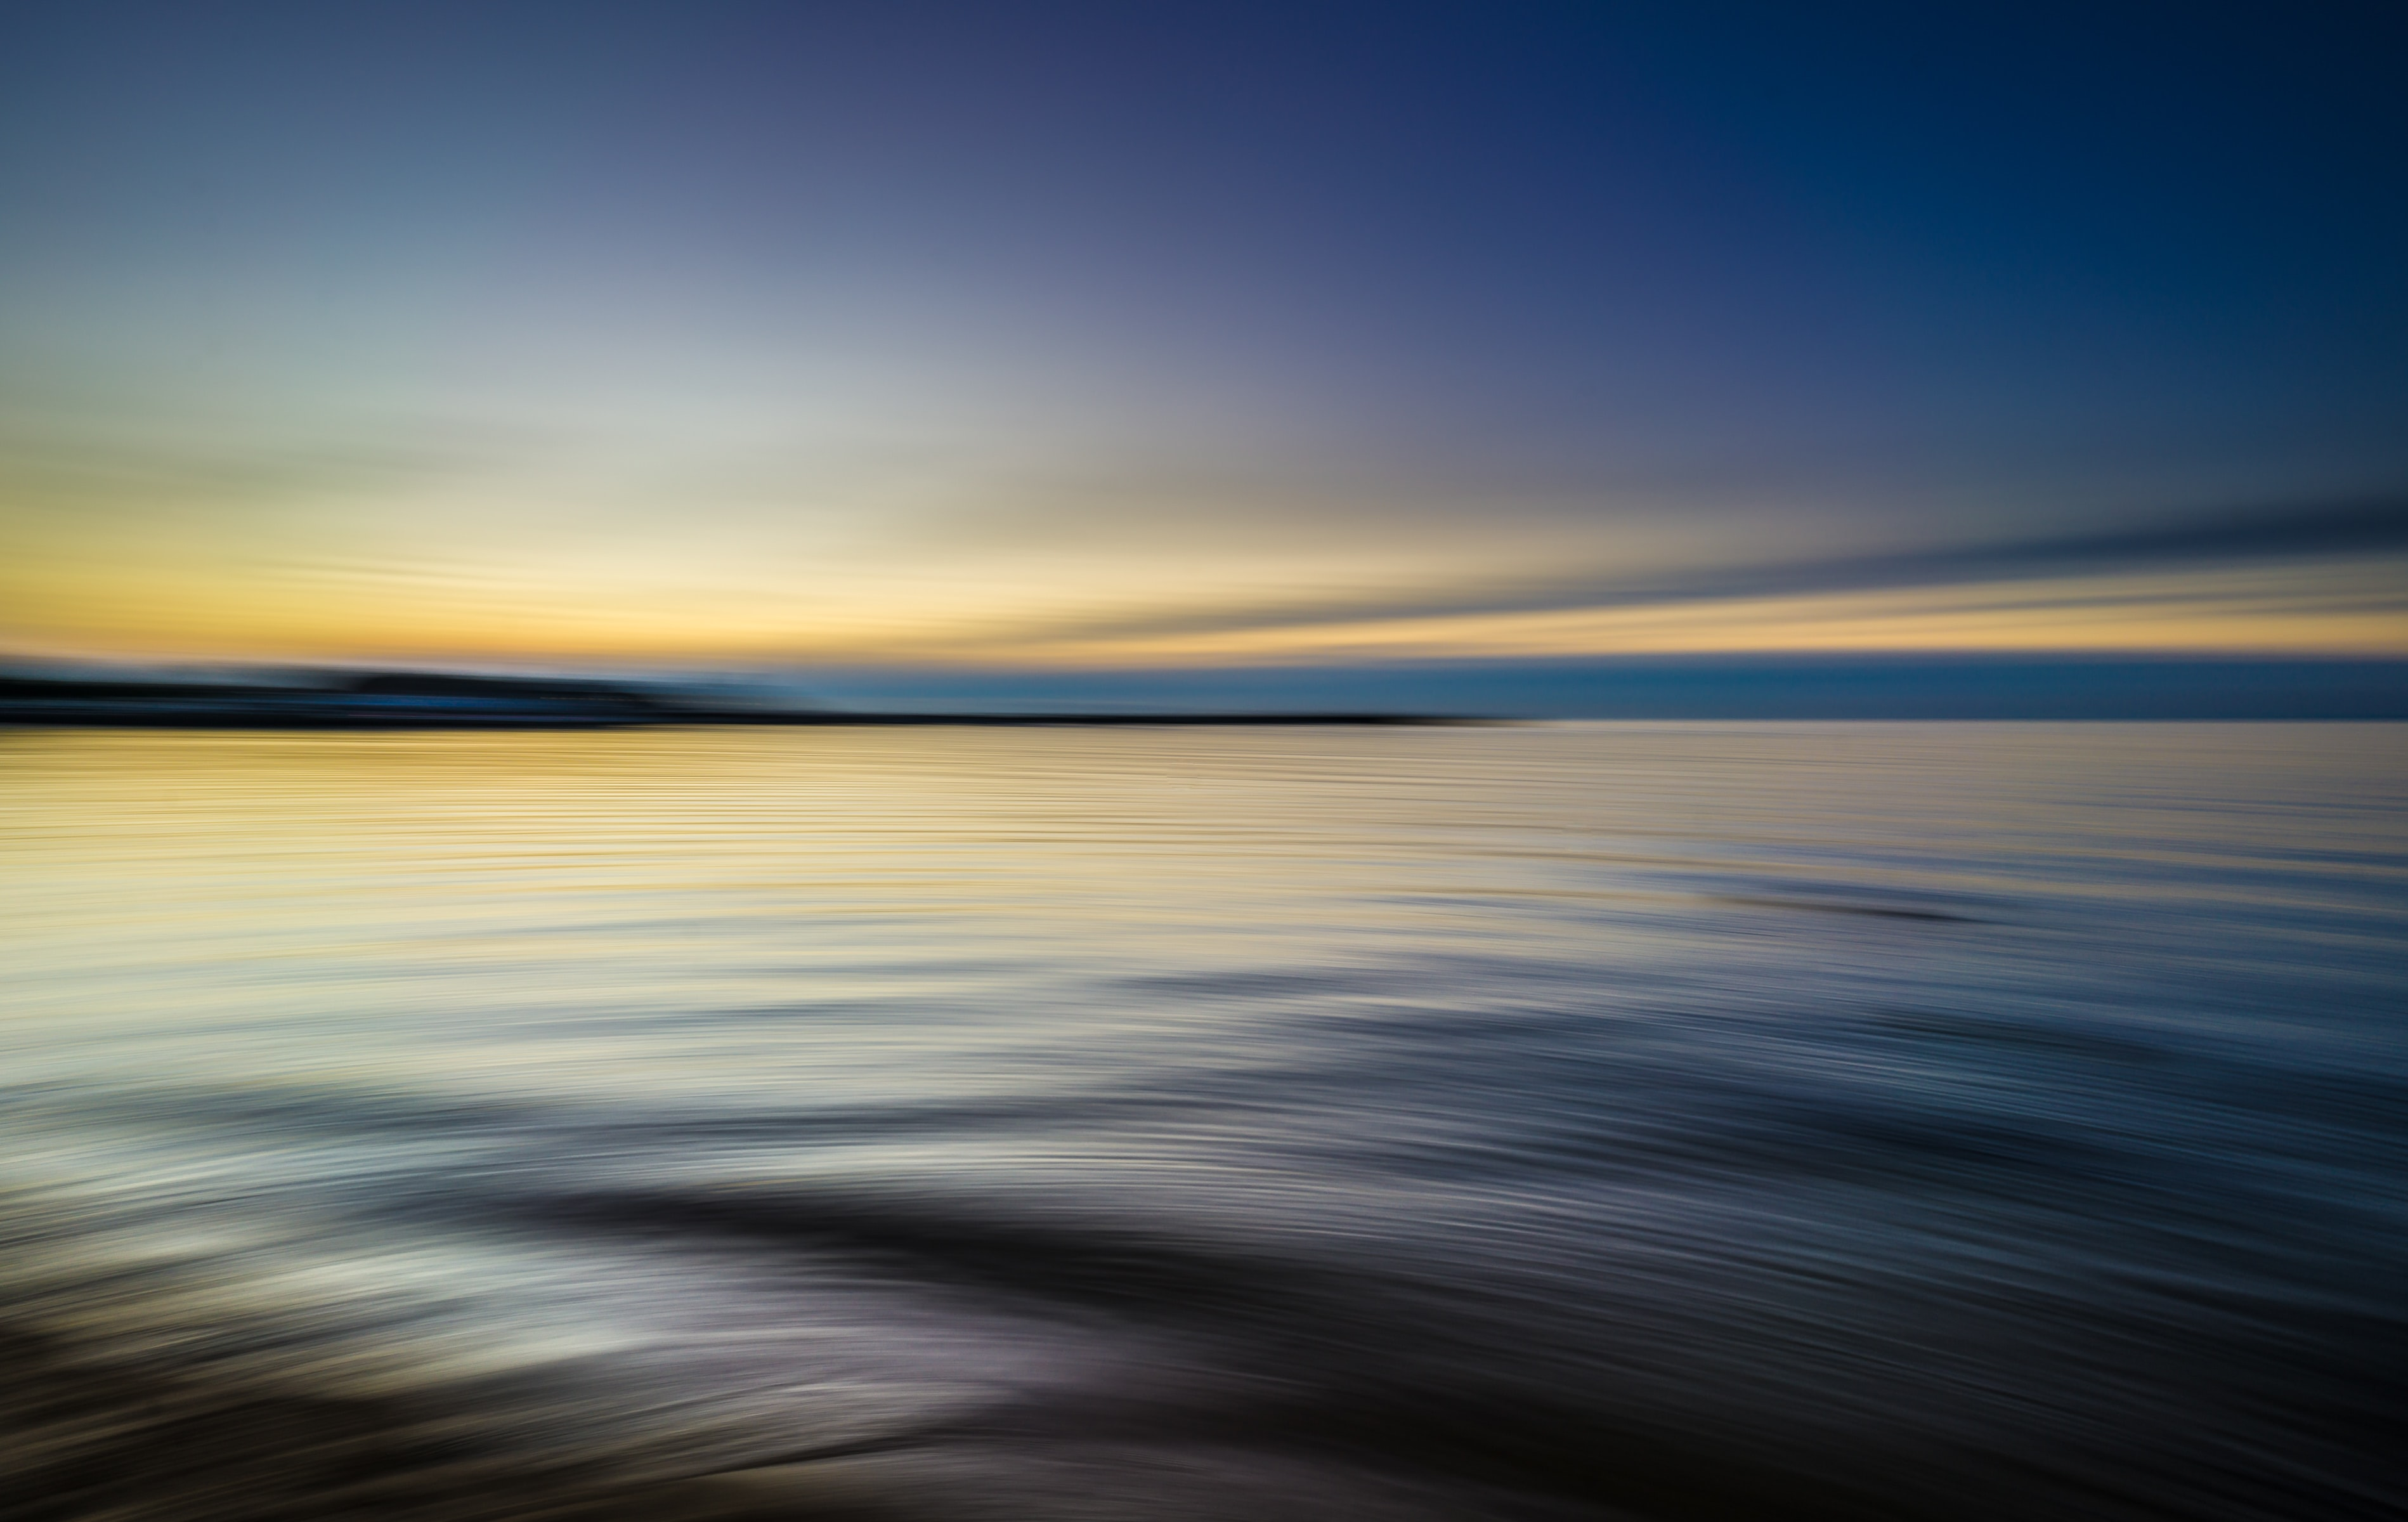 Tranquil rippling waters reflect a blue and yellow sky at sunset